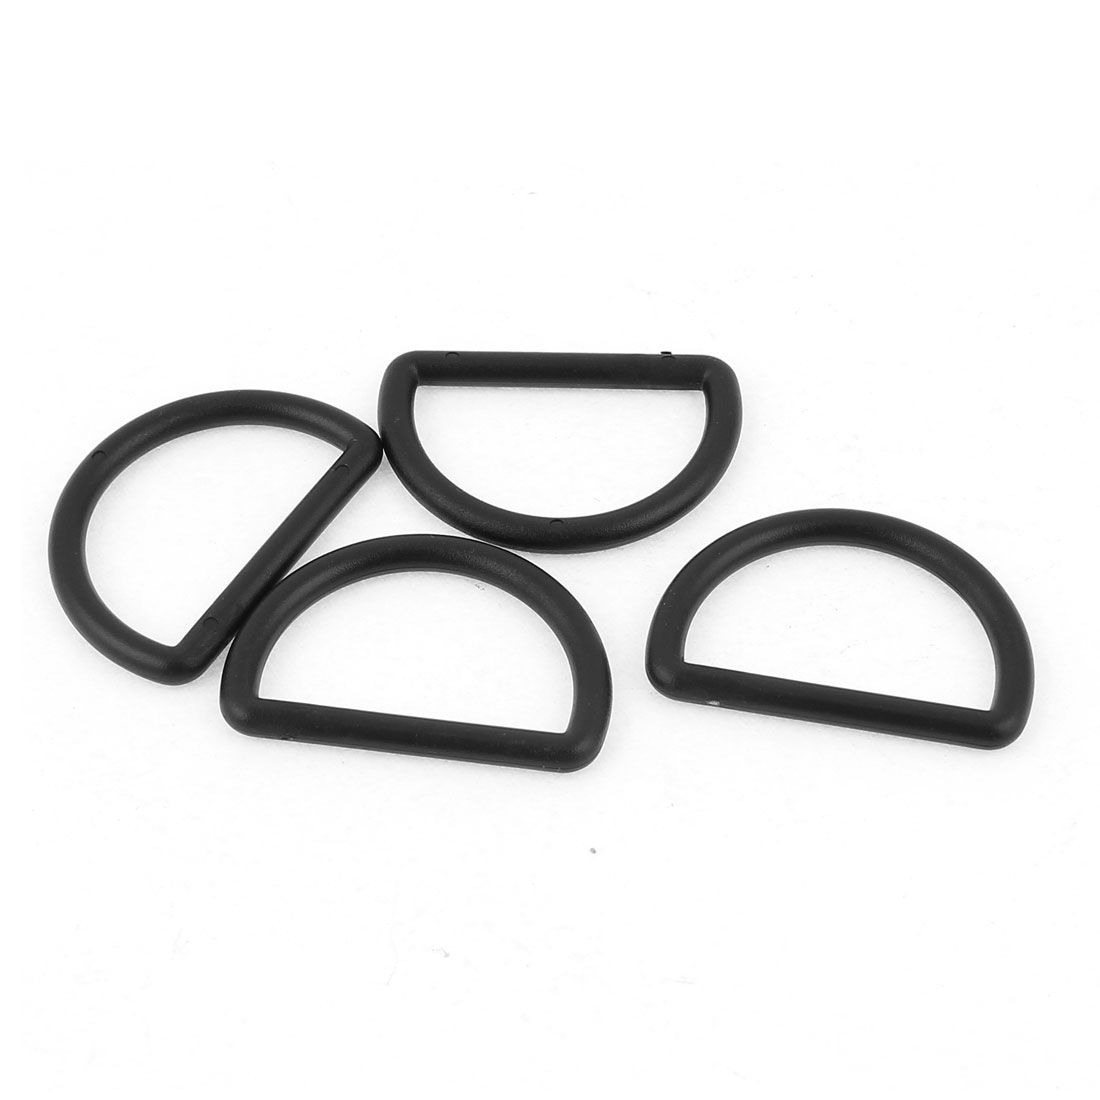 4 Pcs 38mm Black Plastic Backpack Handbag D Ring Hooks D Shaped Buckle